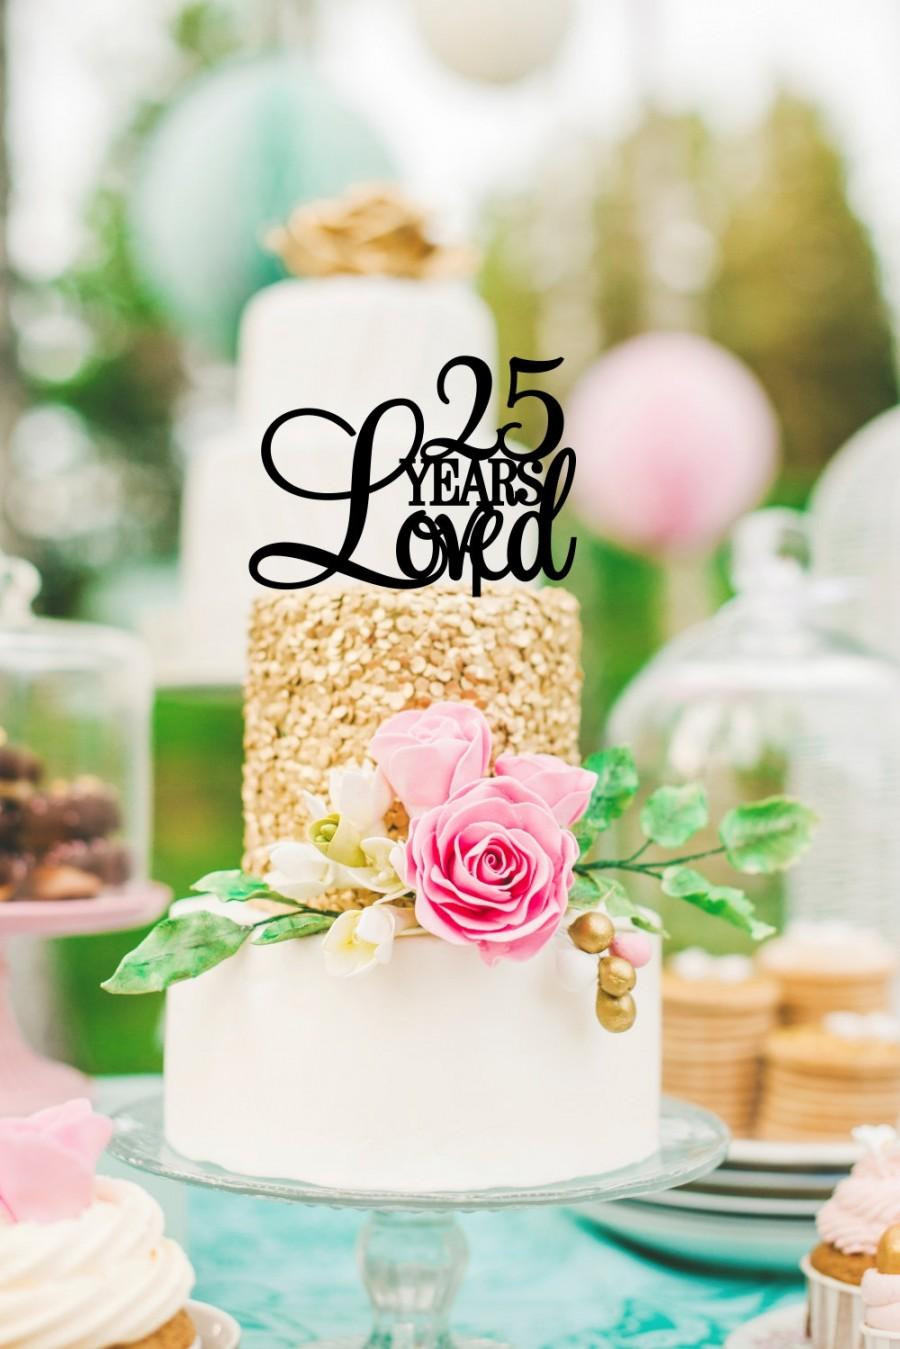 Best ideas about 25 Birthday Cake . Save or Pin Custom 25 Years Loved Cake Topper Birthday Cake Topper Now.